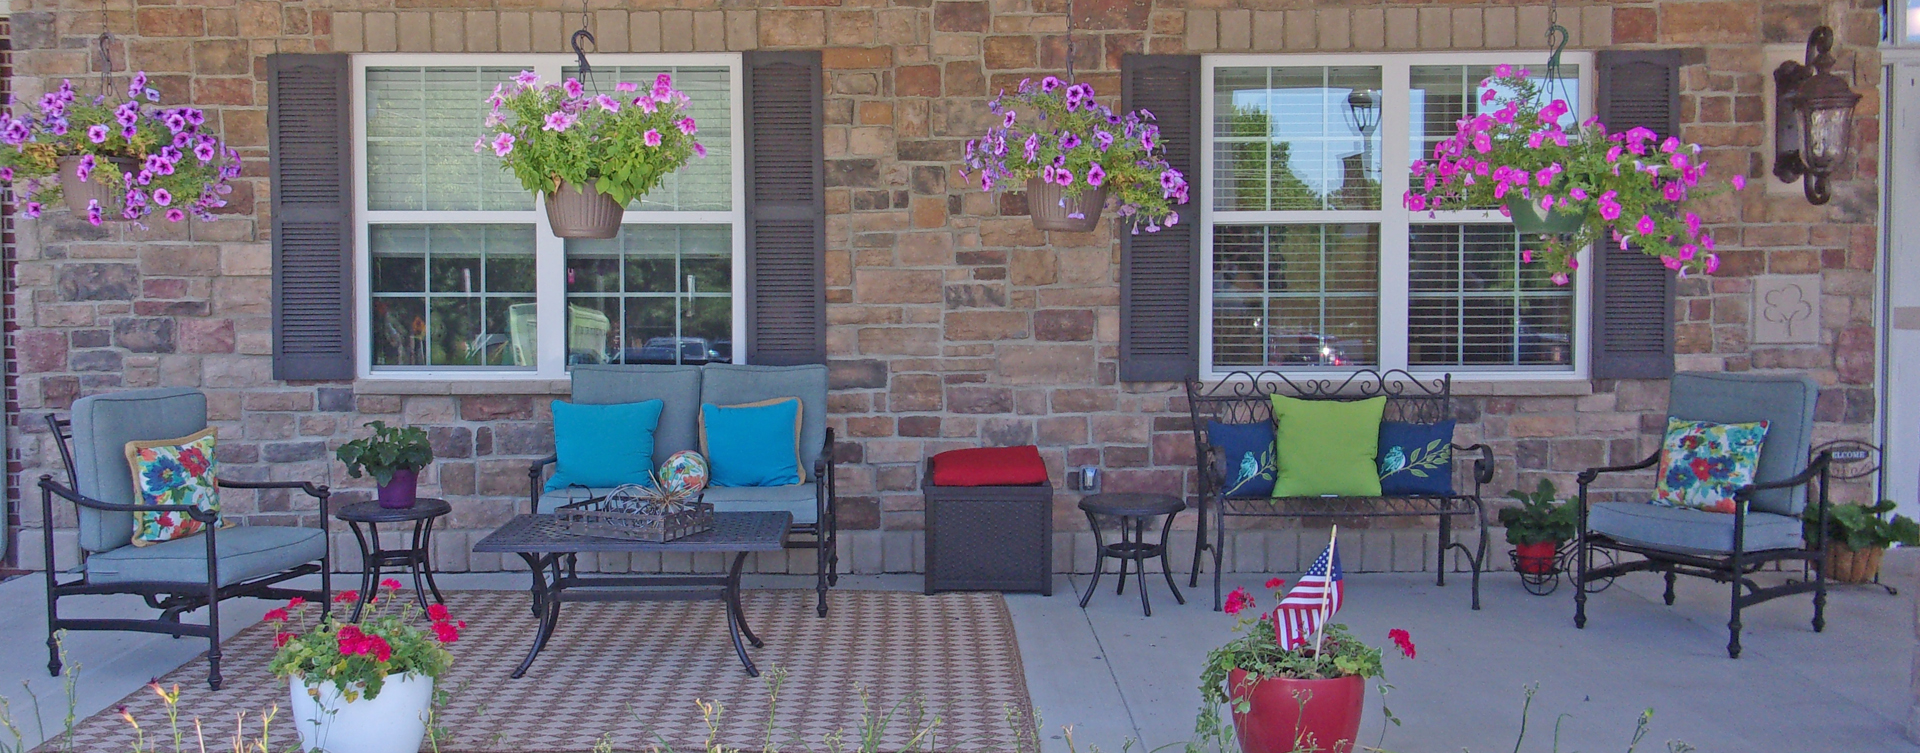 Relax in your favorite chair on the porch at Bickford of Chesterfield